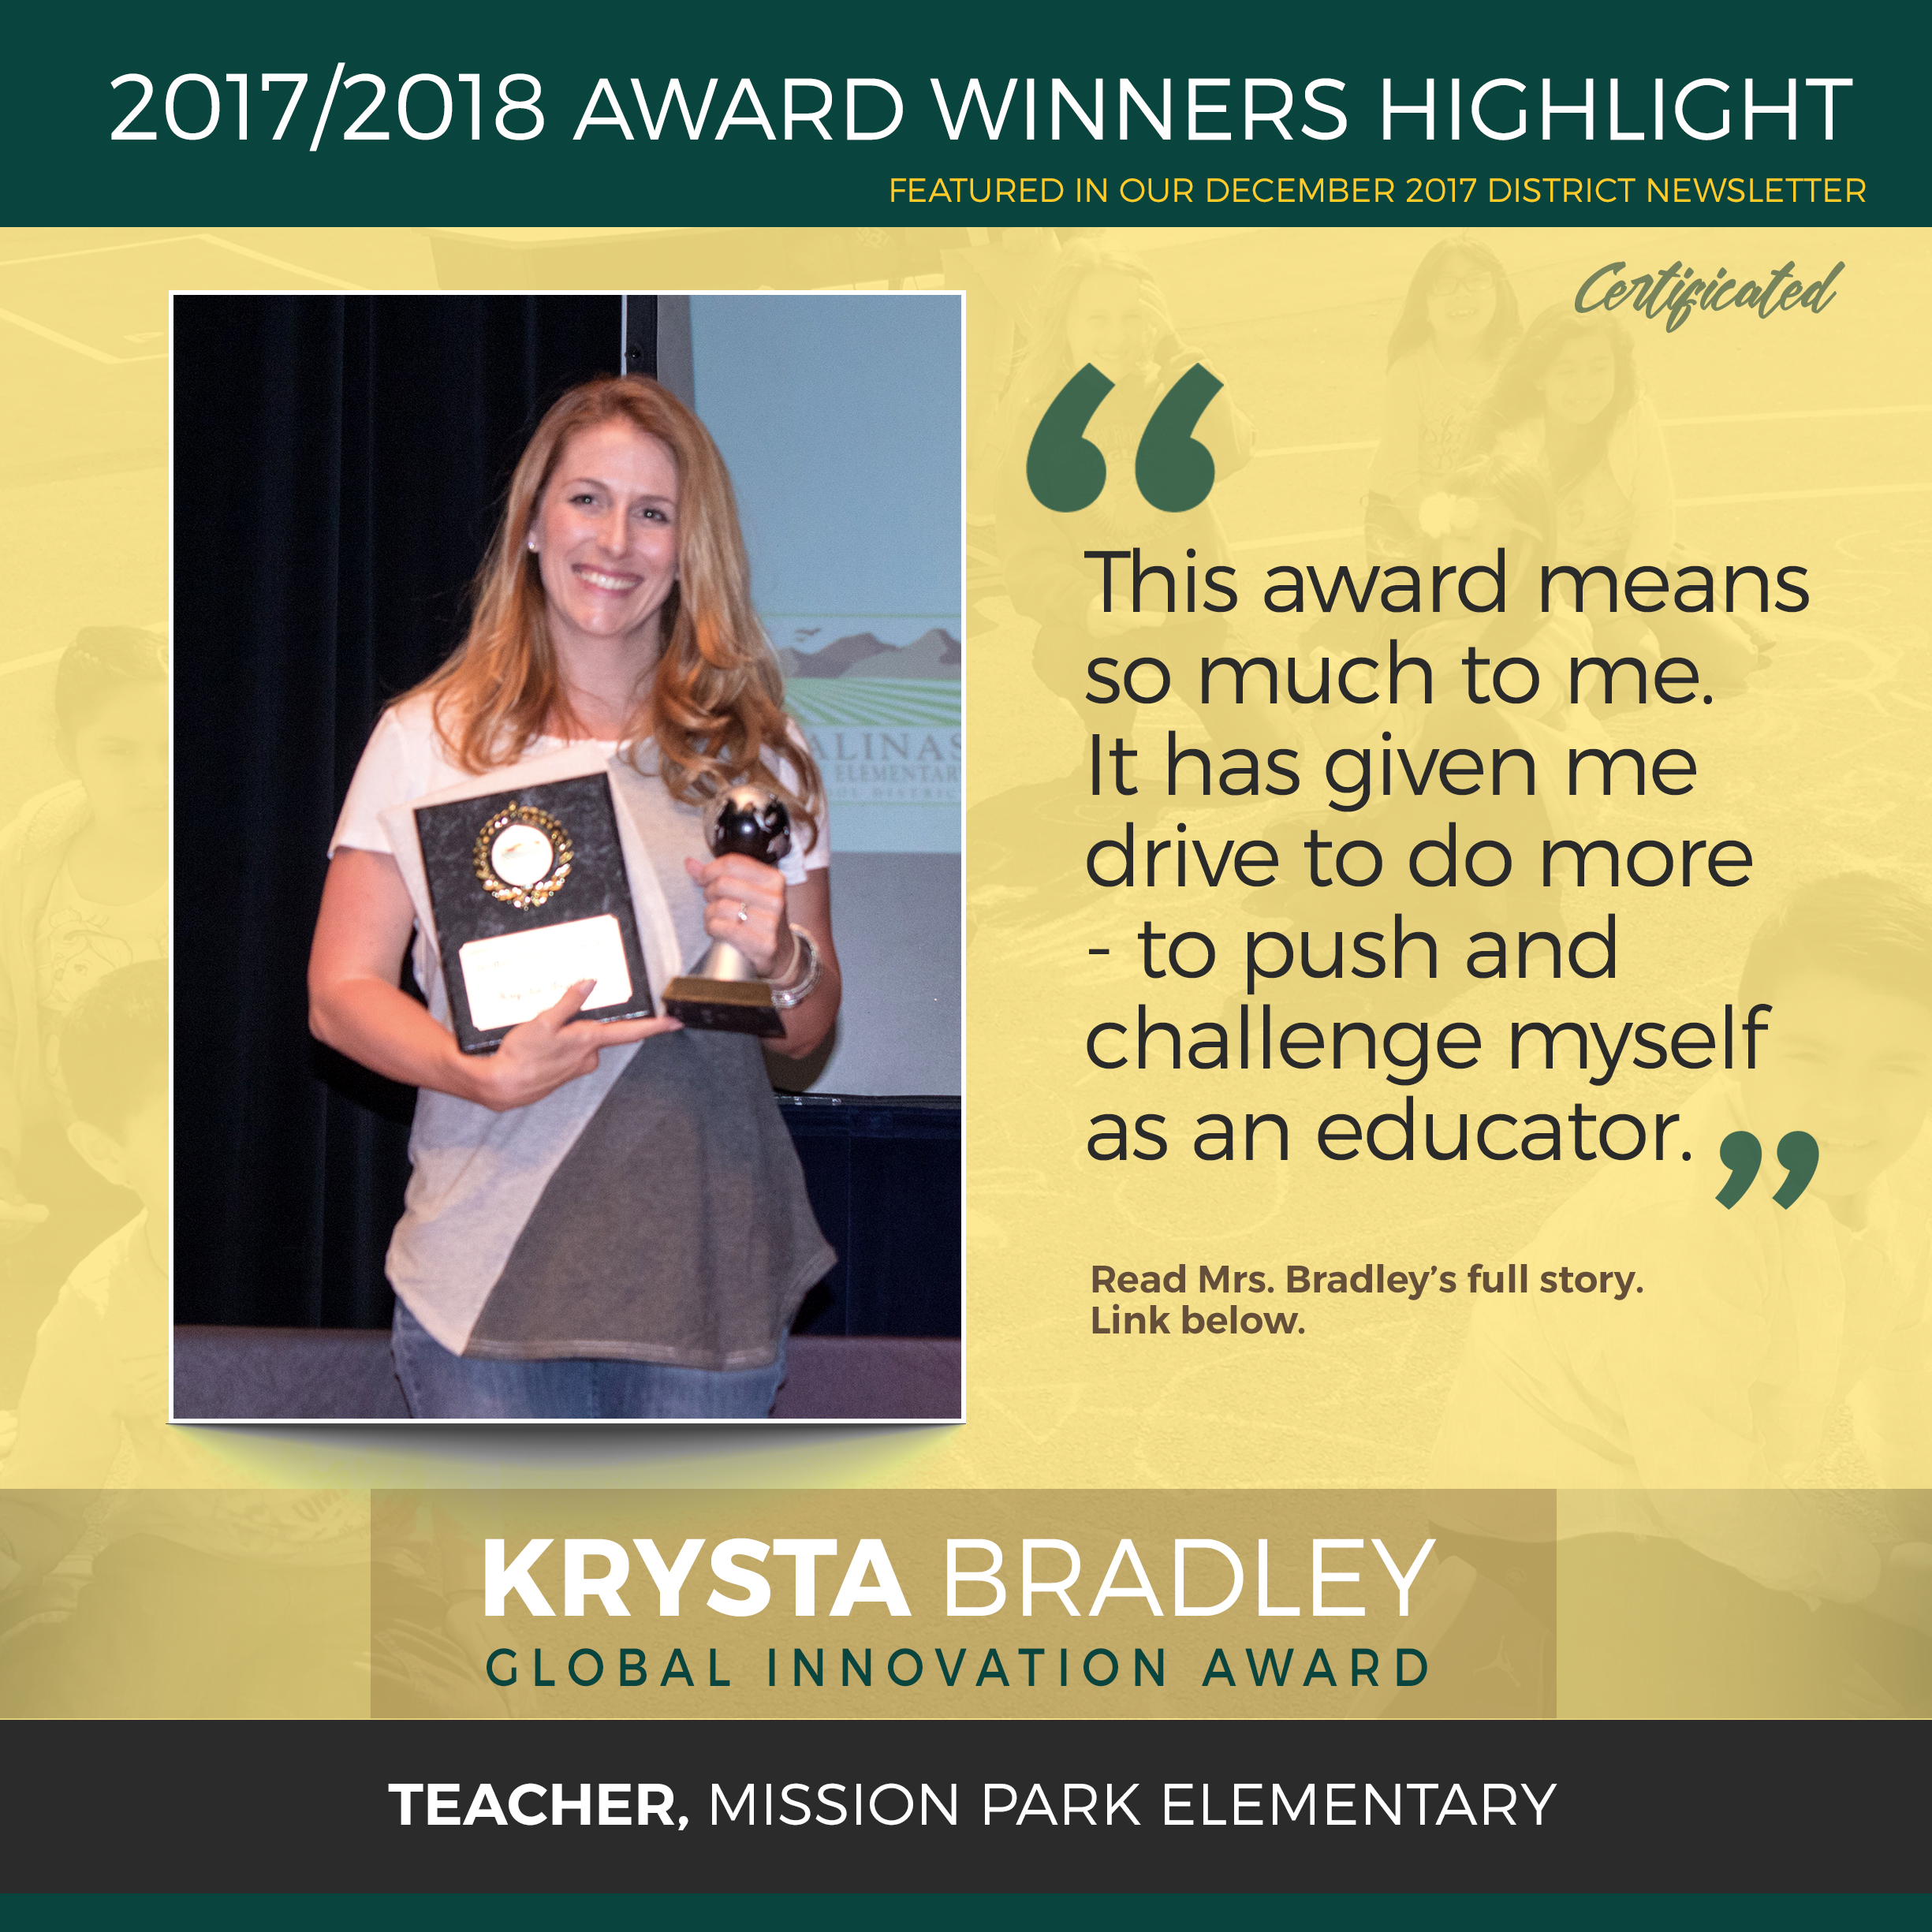 Krysta-Award Winner Hightlight_Social Ad Template.jpg